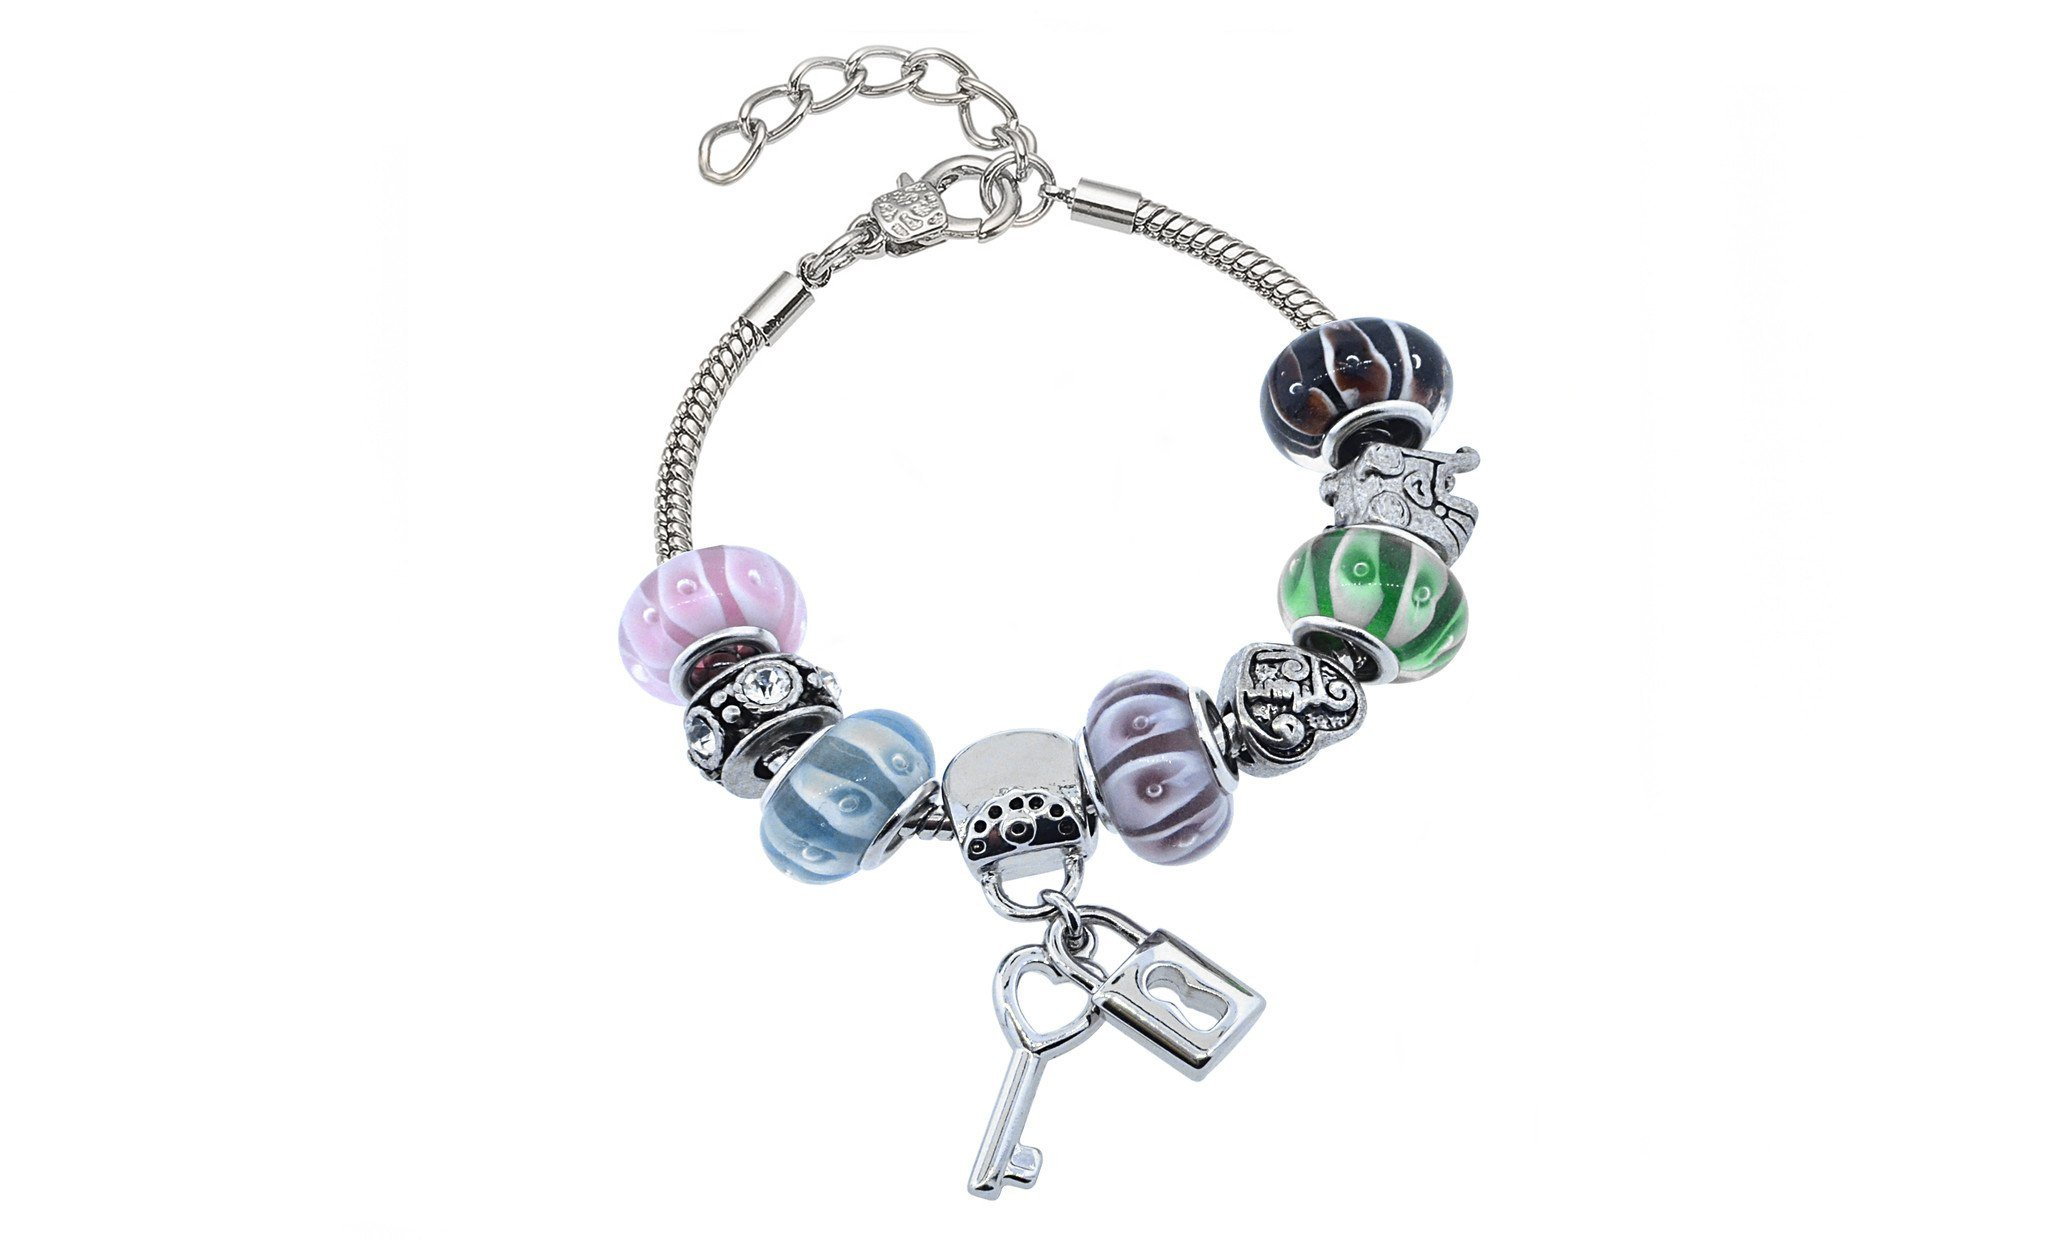 it's a picture of lock and key charm bracelets for women